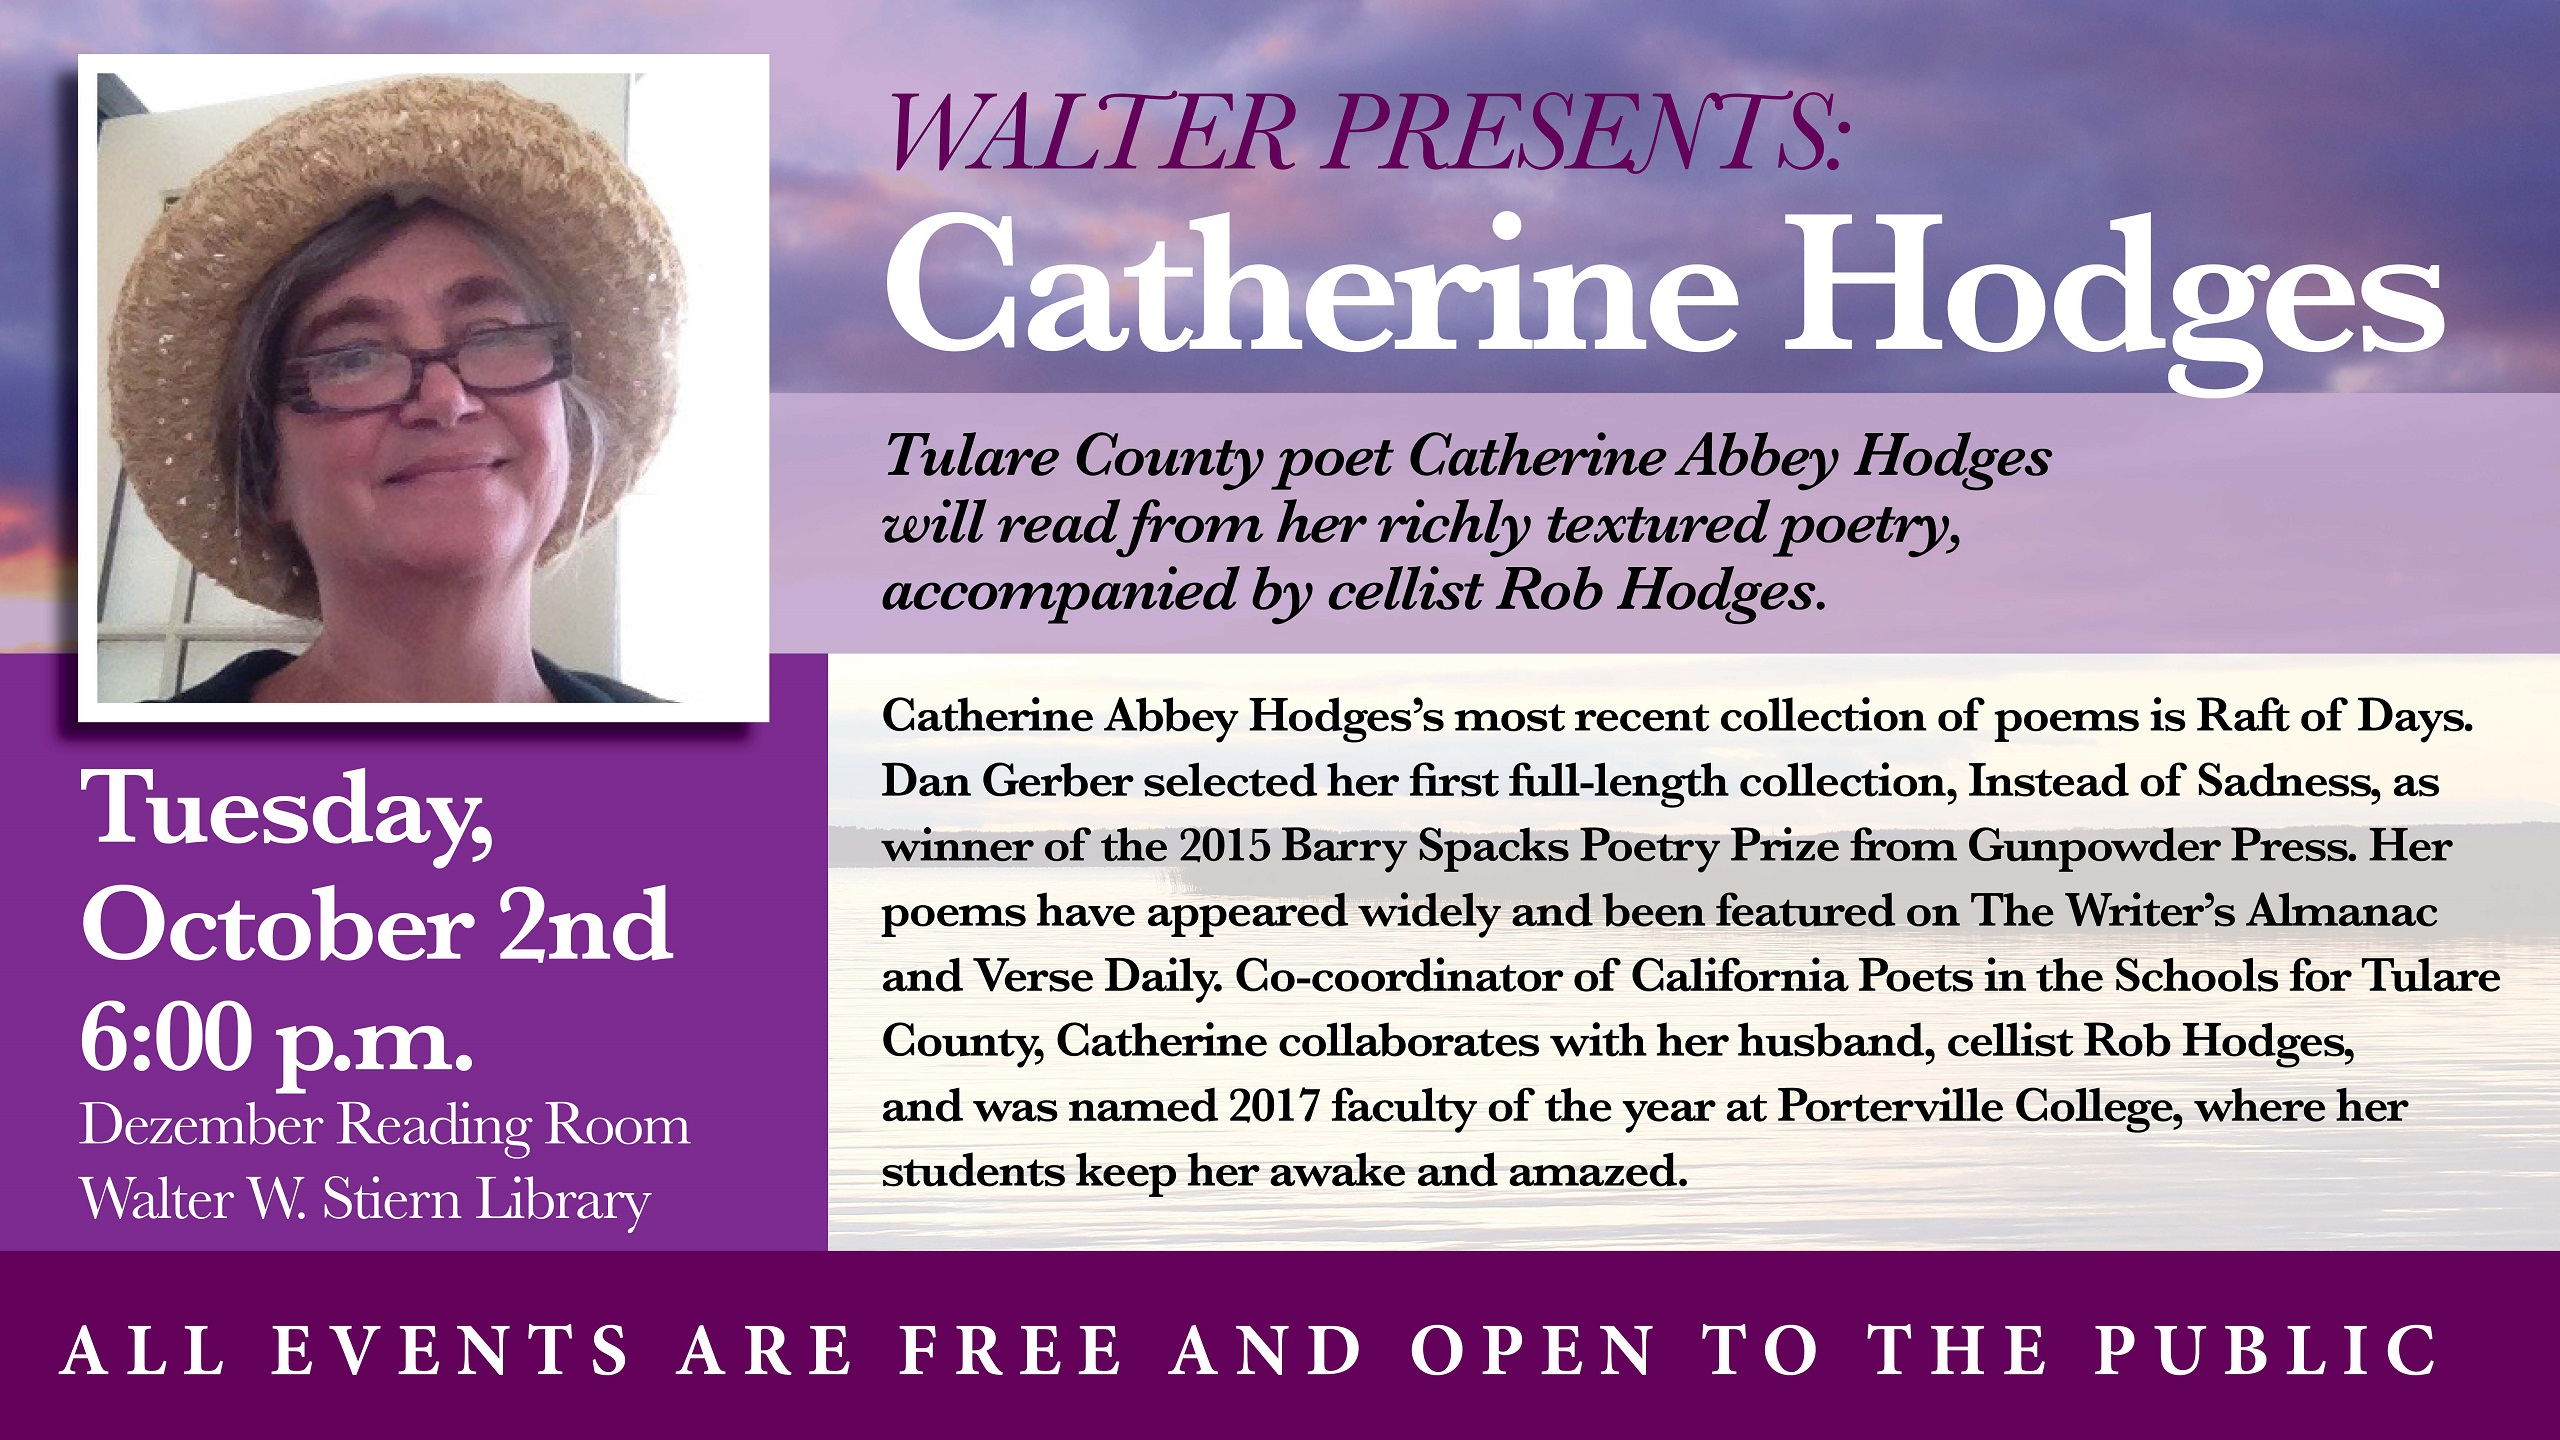 Walter Presents: Catherine Abbey Hodges